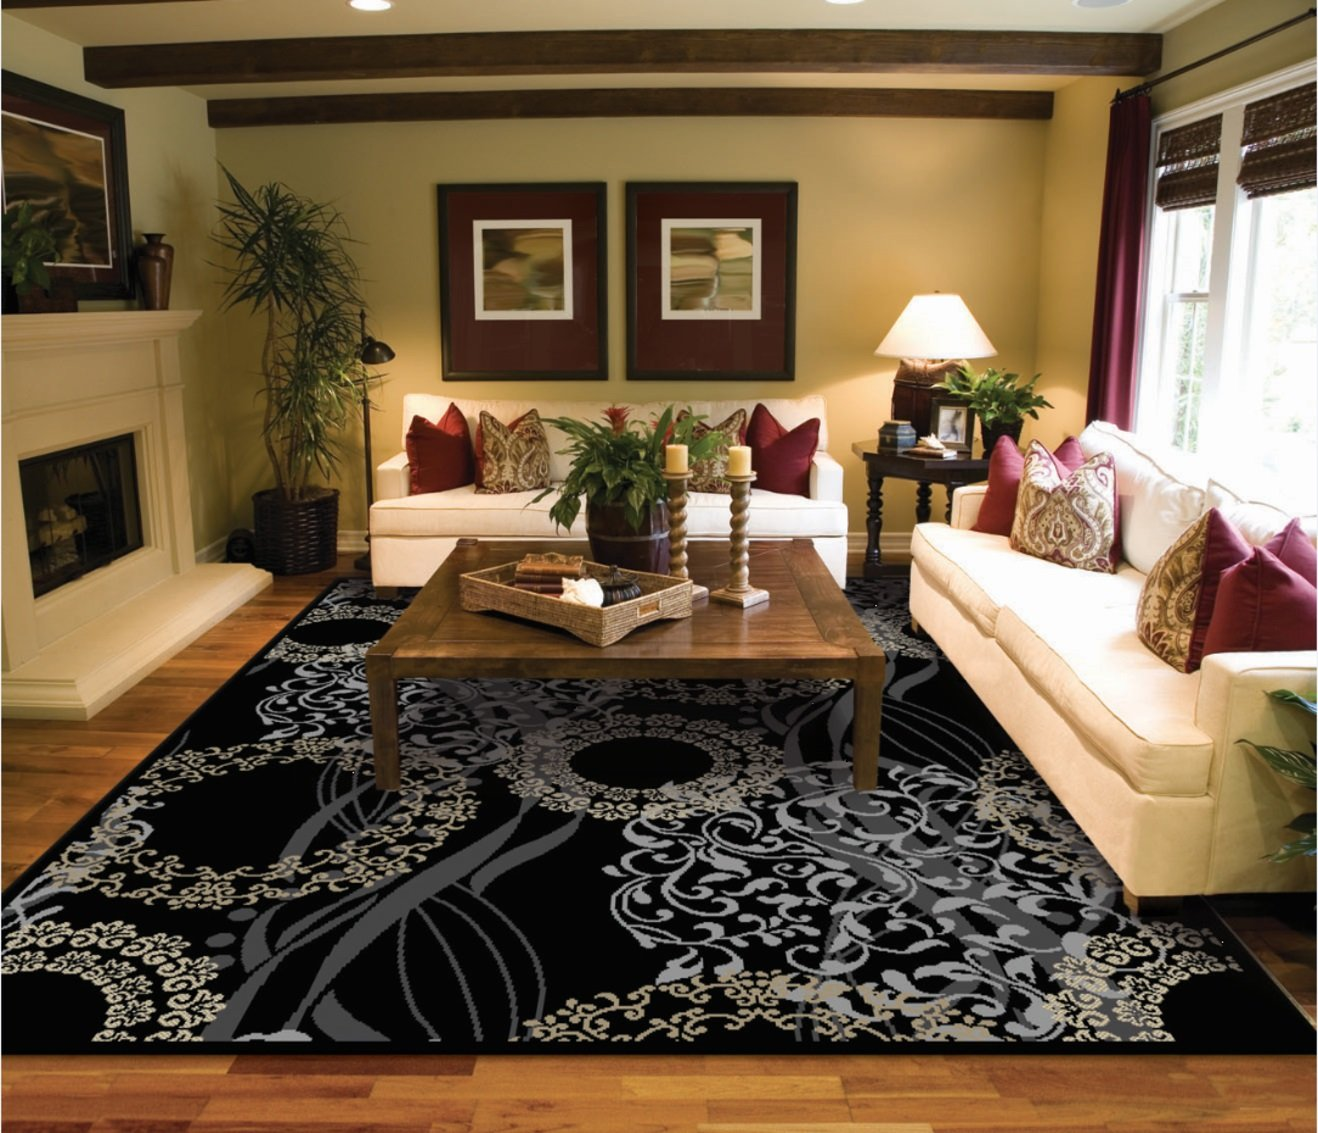 Amazon.com: Luxury Modern Rugs For Living Dining Room Black Cream Beige Rug  5x7 Contemporary Eetrance Rug Indoor Area Rugs 5x8 Bedroom Rugs: Home U0026  Kitchen